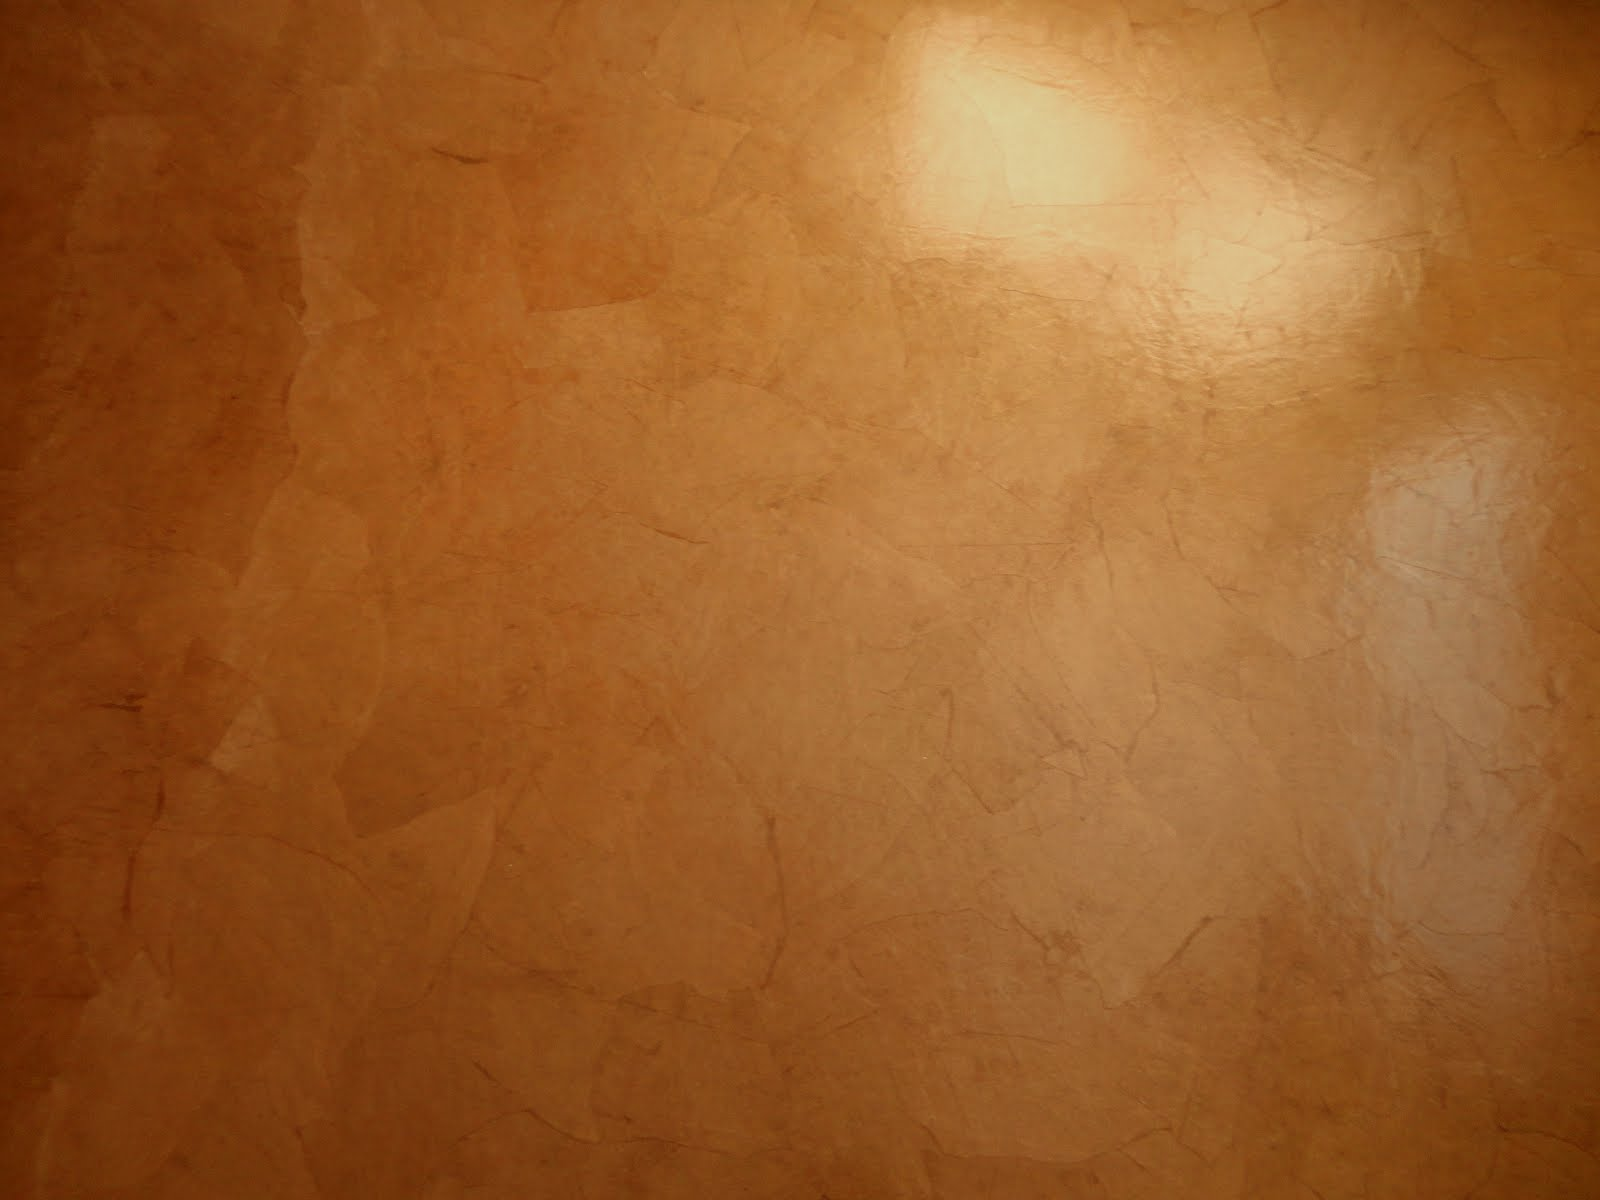 RE Brown Paper Bag Wallpaper Images   Frompo 1600x1200